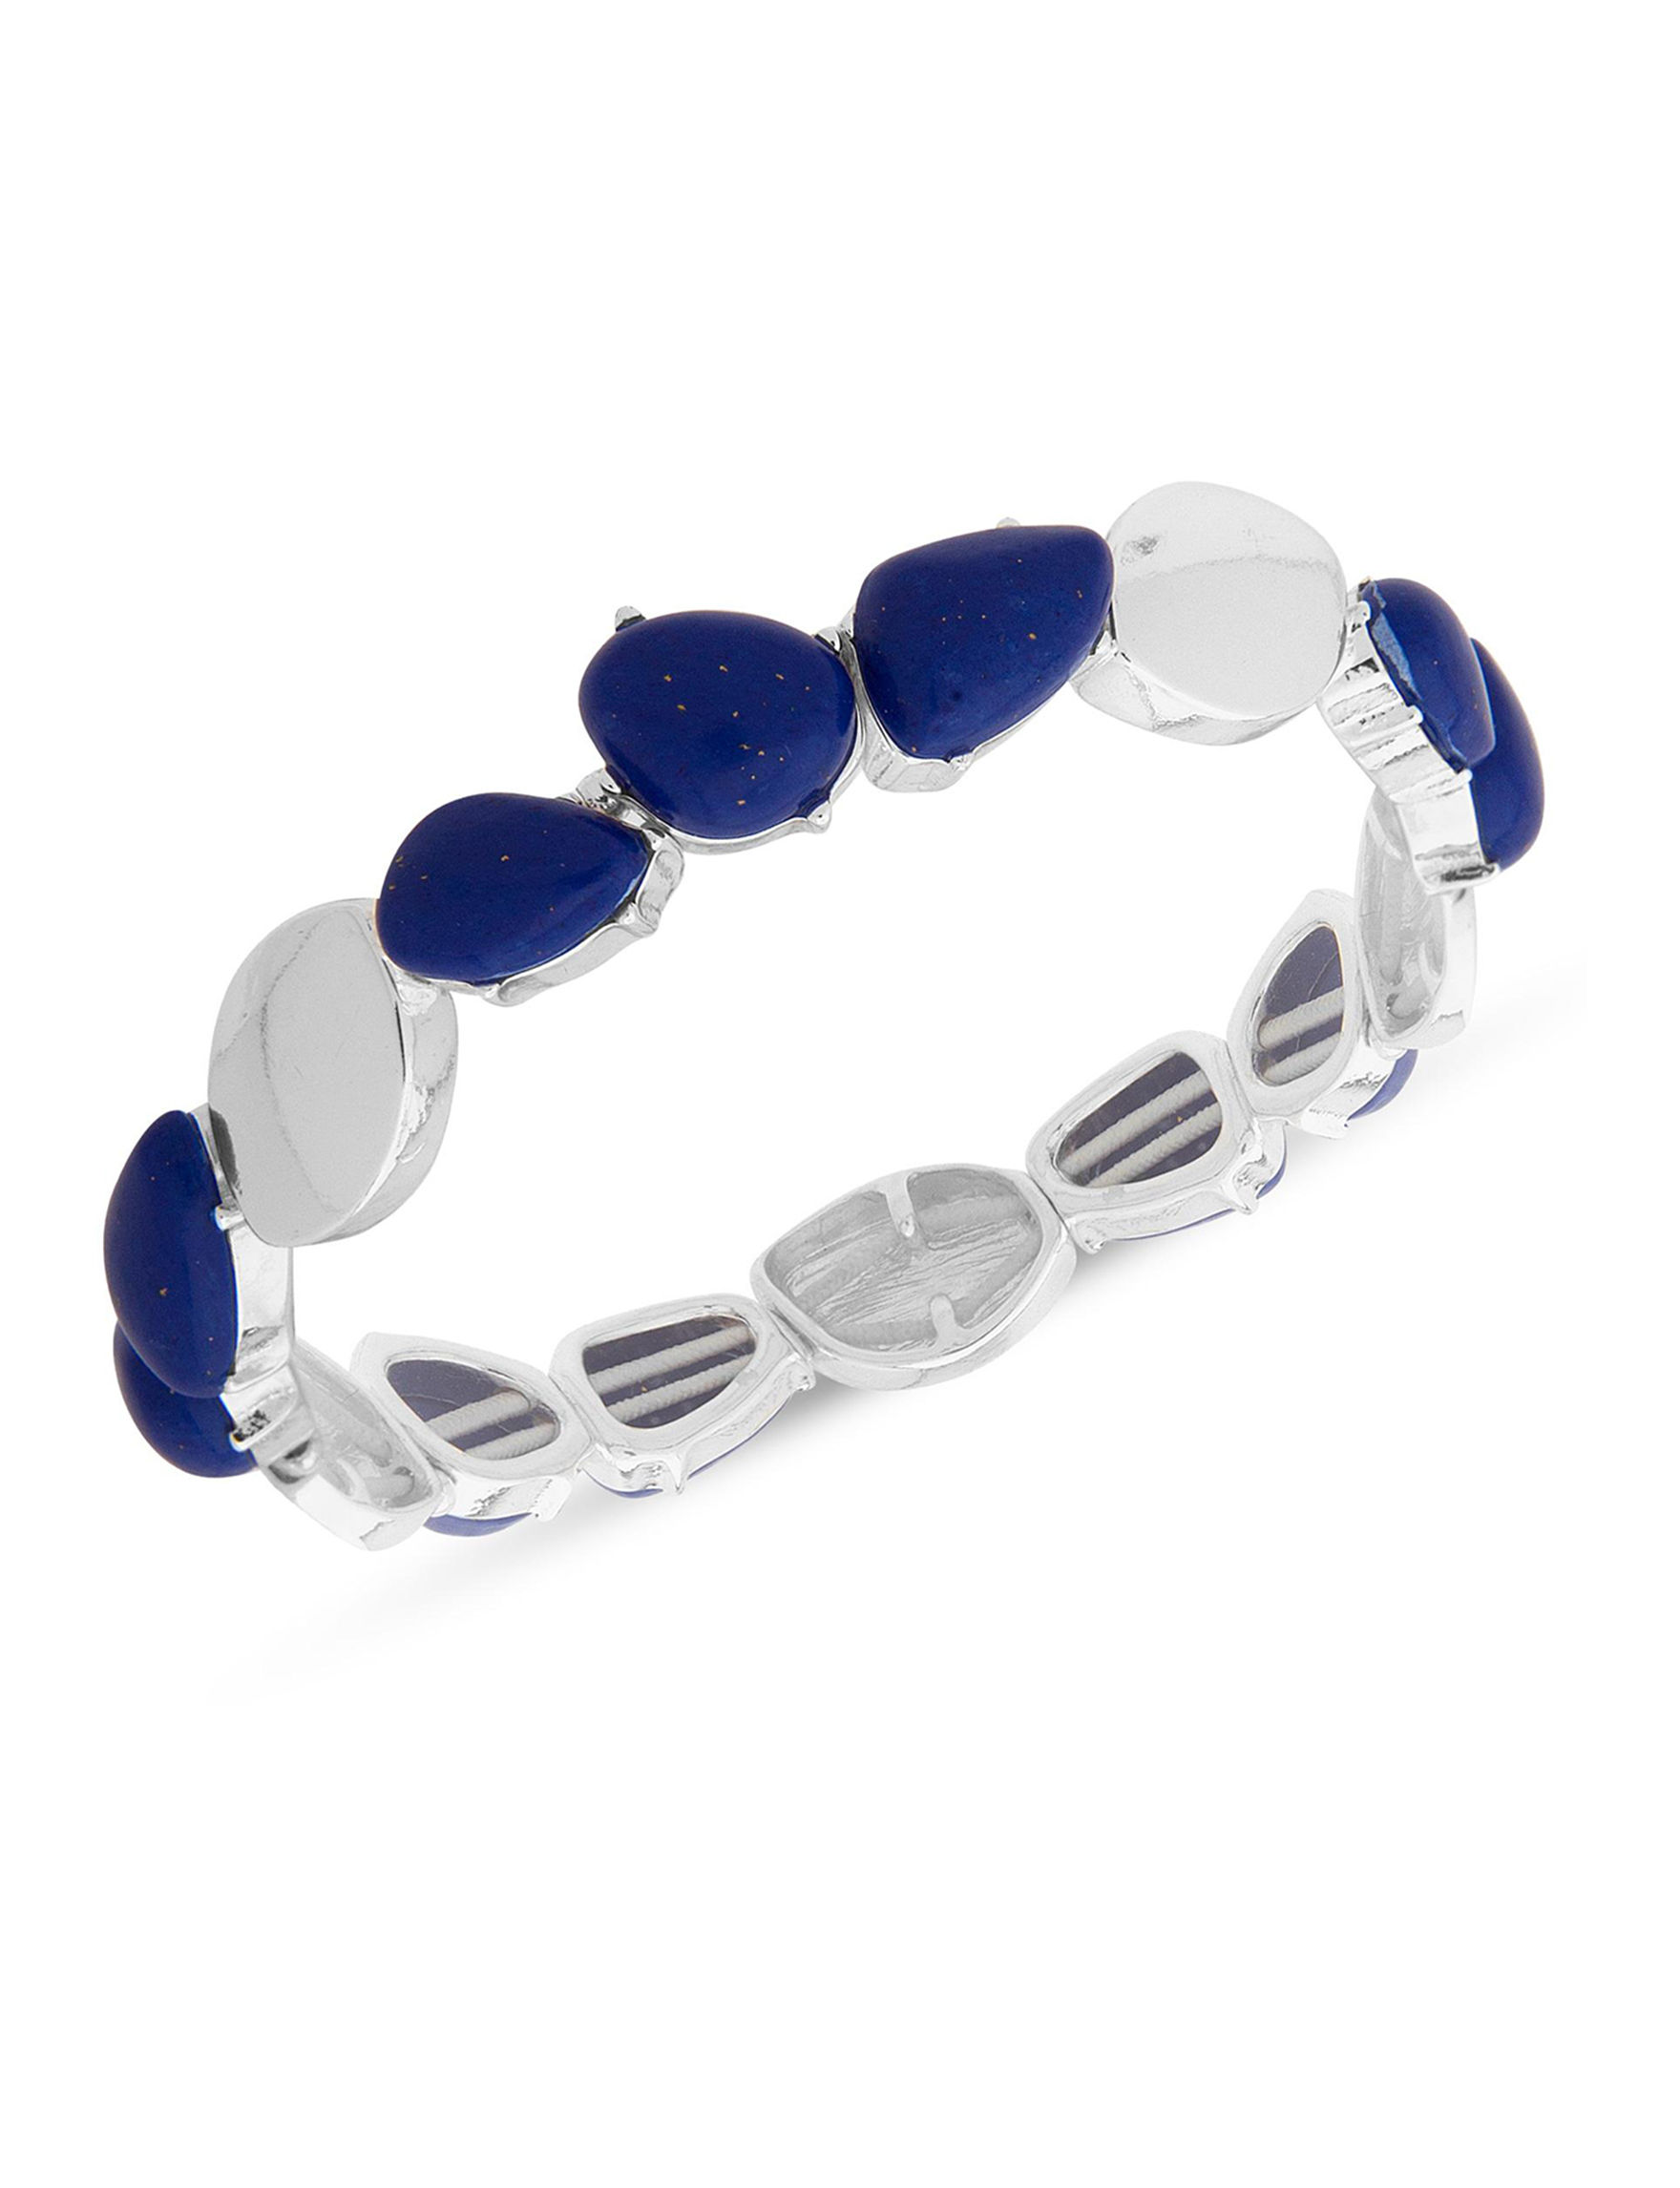 Chaps Blue / Silver Bracelets Fashion Jewelry